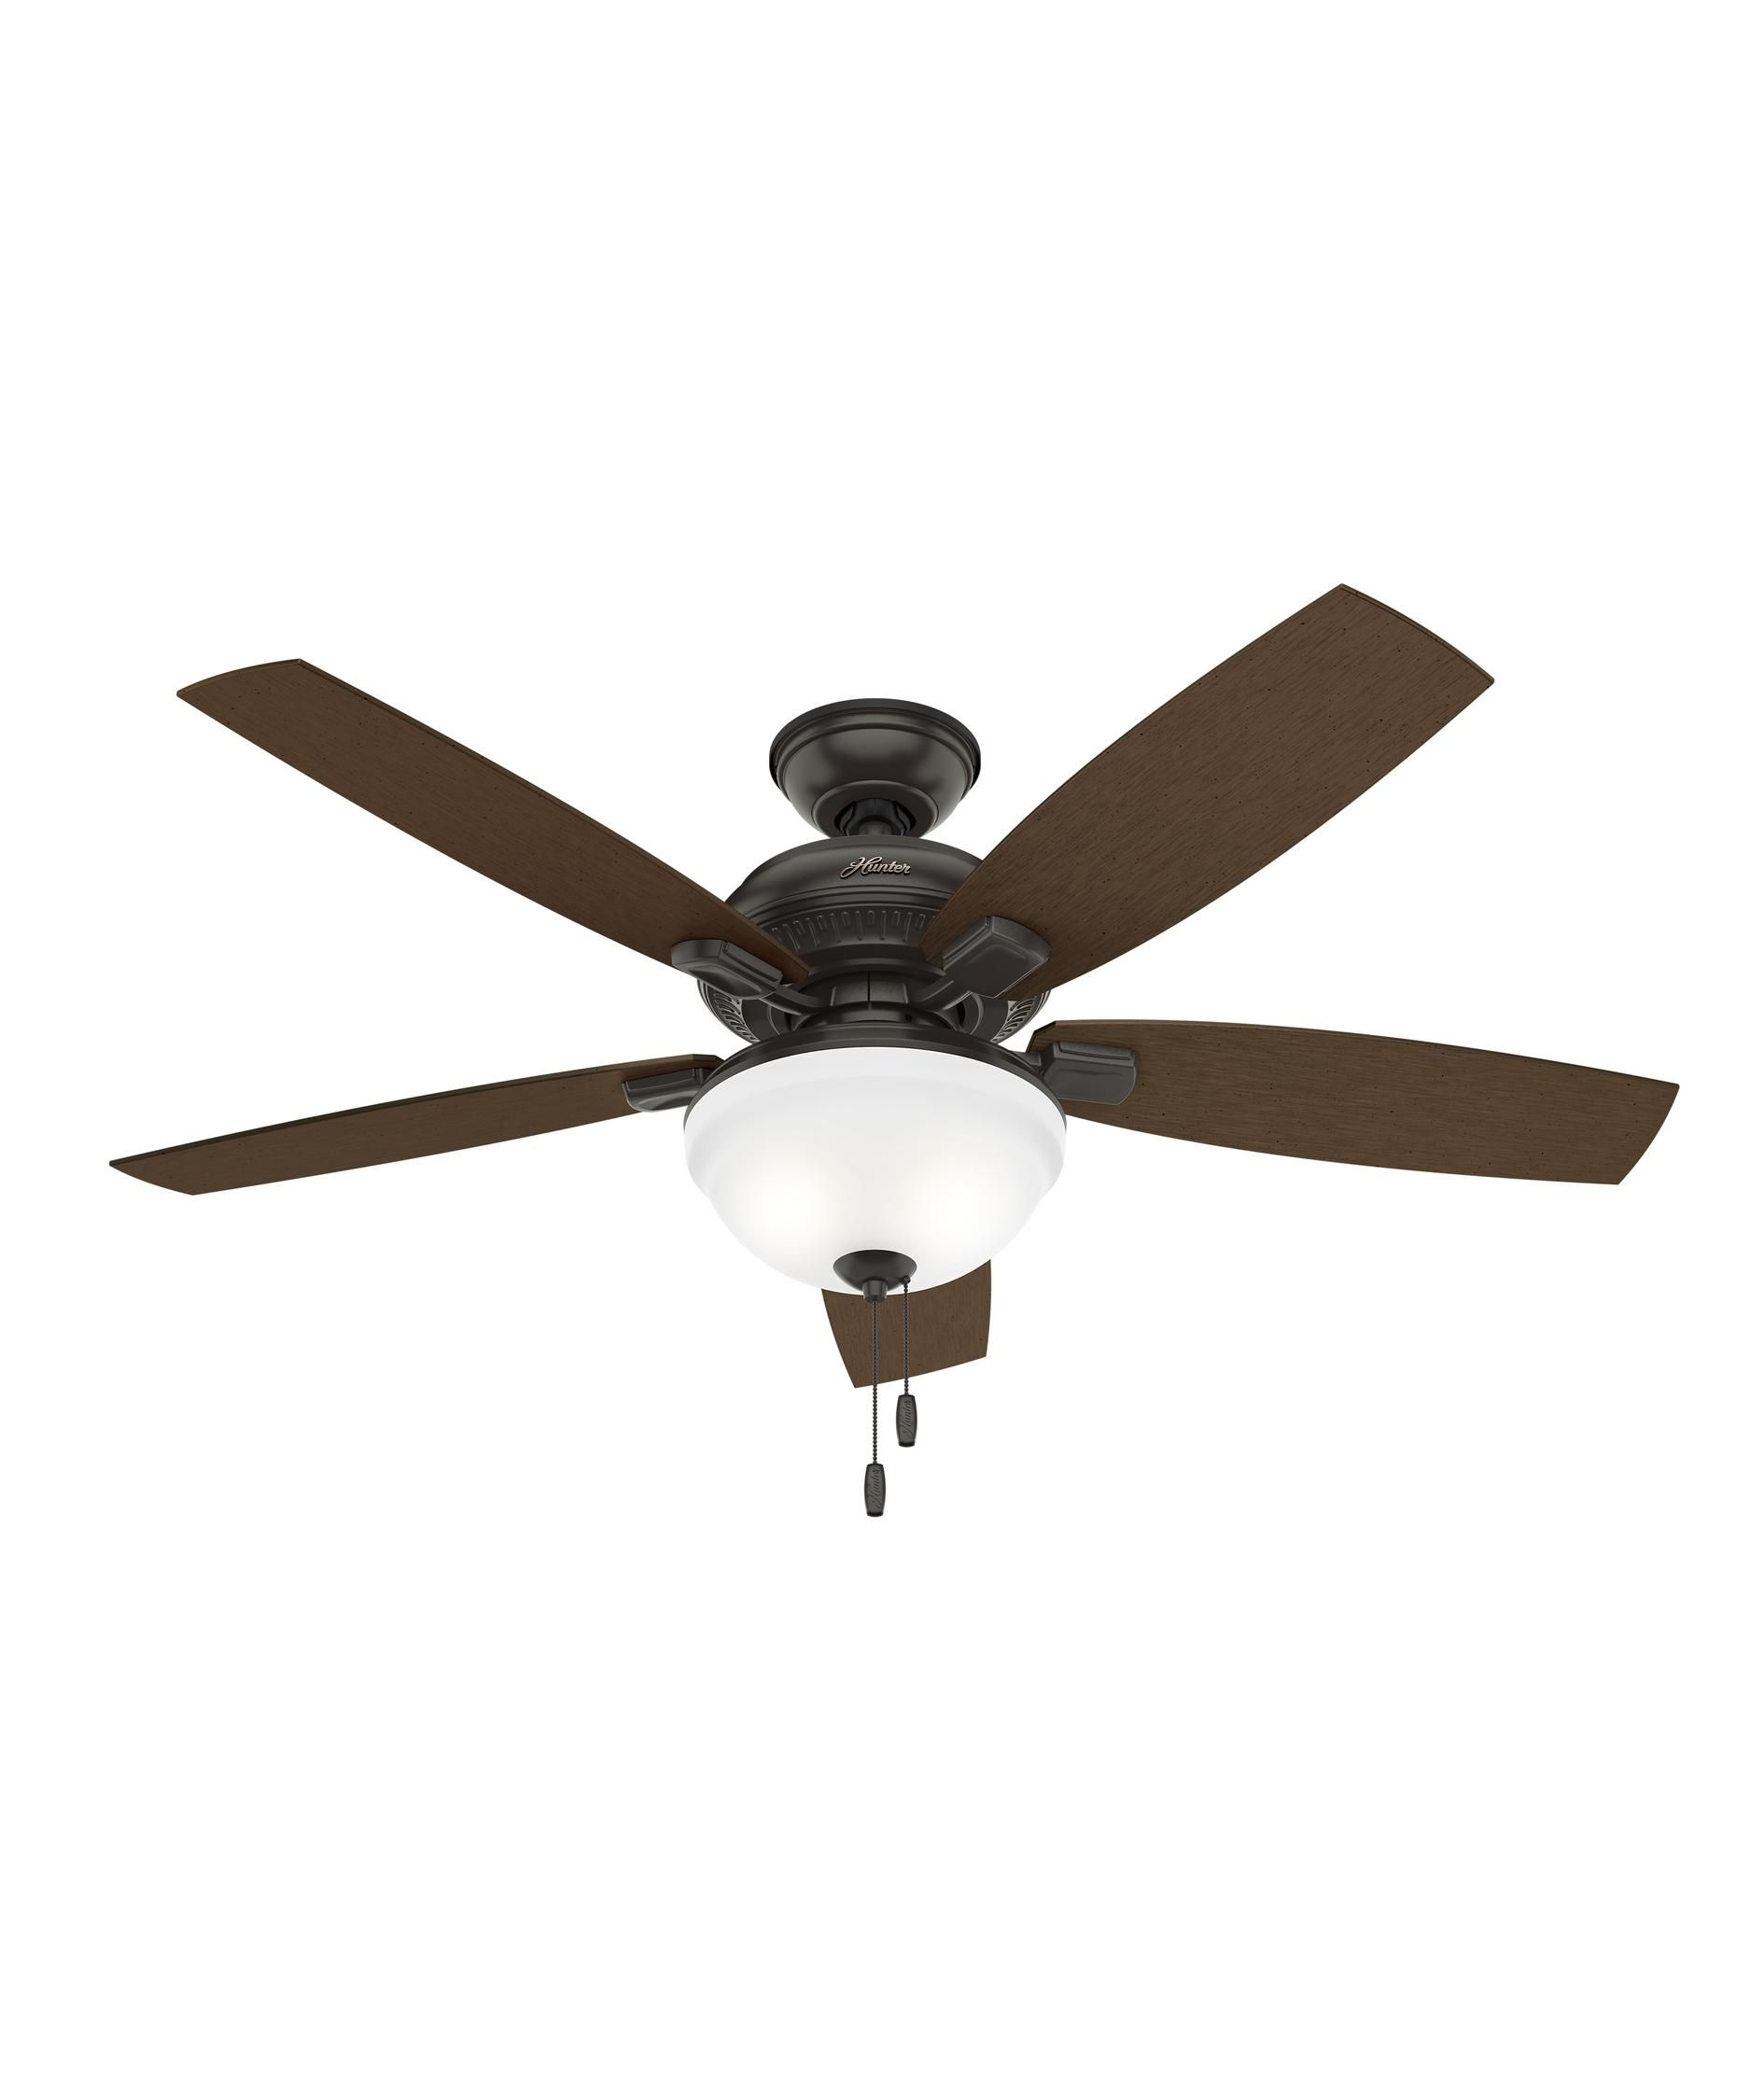 inch item ceiling lighting outdoor capitol fan com spitfire cfm galvanized fanimation blade